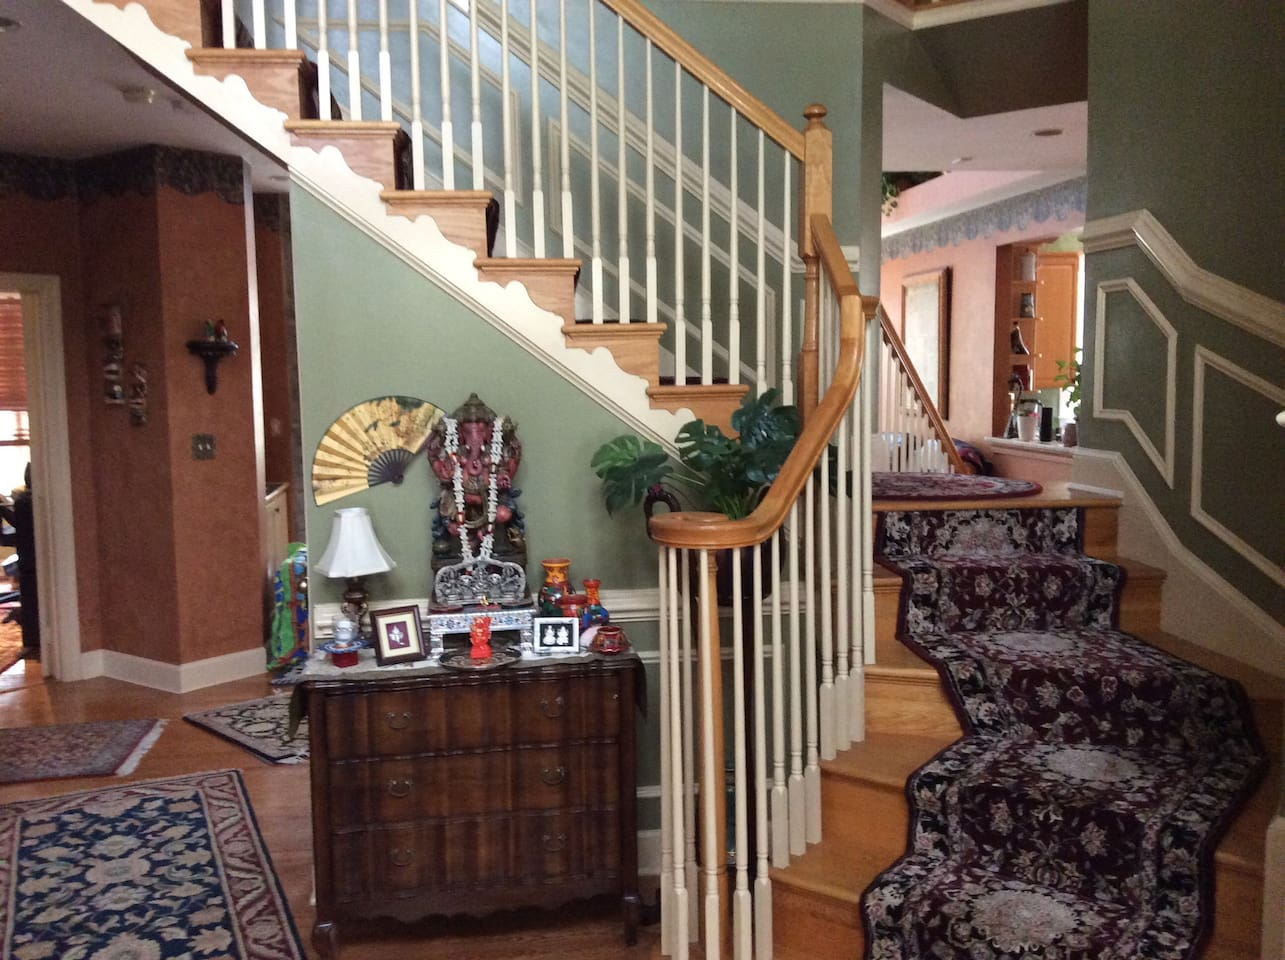 Entrance to welcome guest and stairs to go to bedroom